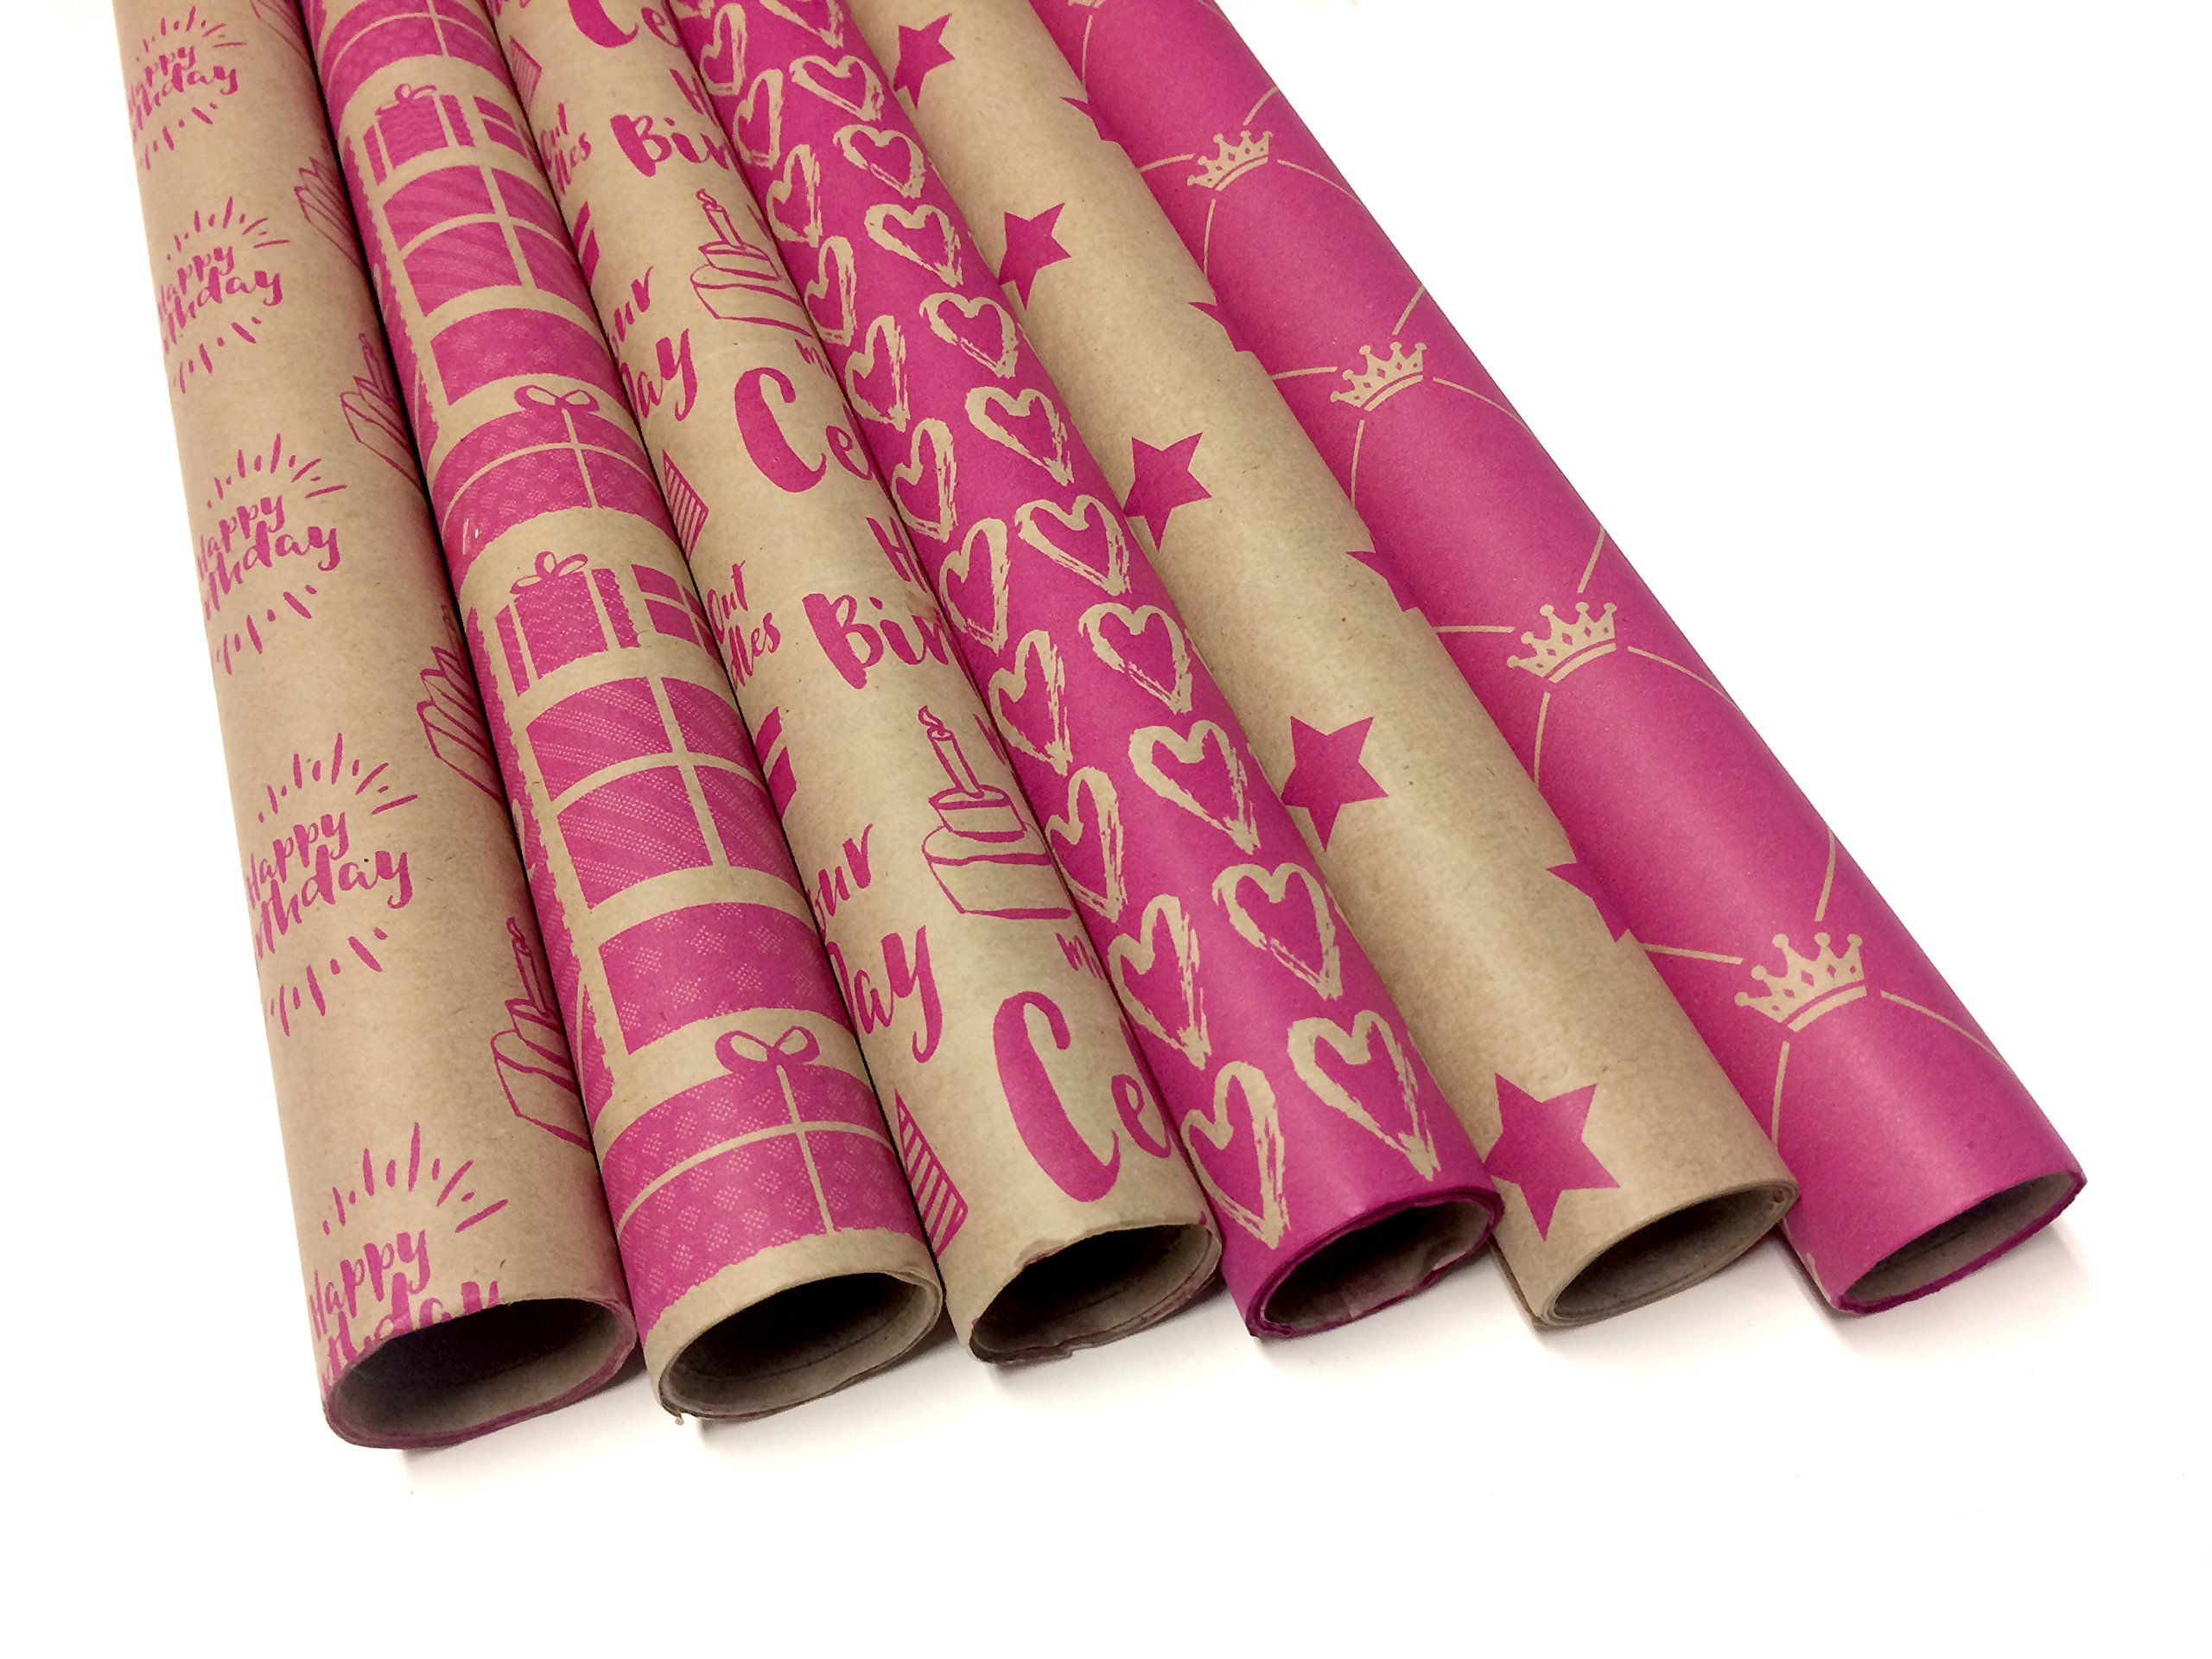 Kraft And Pink Wrapping Paper Set 6 Rolls 6 Birthday Patterns 30 X 120 Per Roll Ad Paper Aff Set Wrapping K Pink Wrapping Paper Pattern Pink